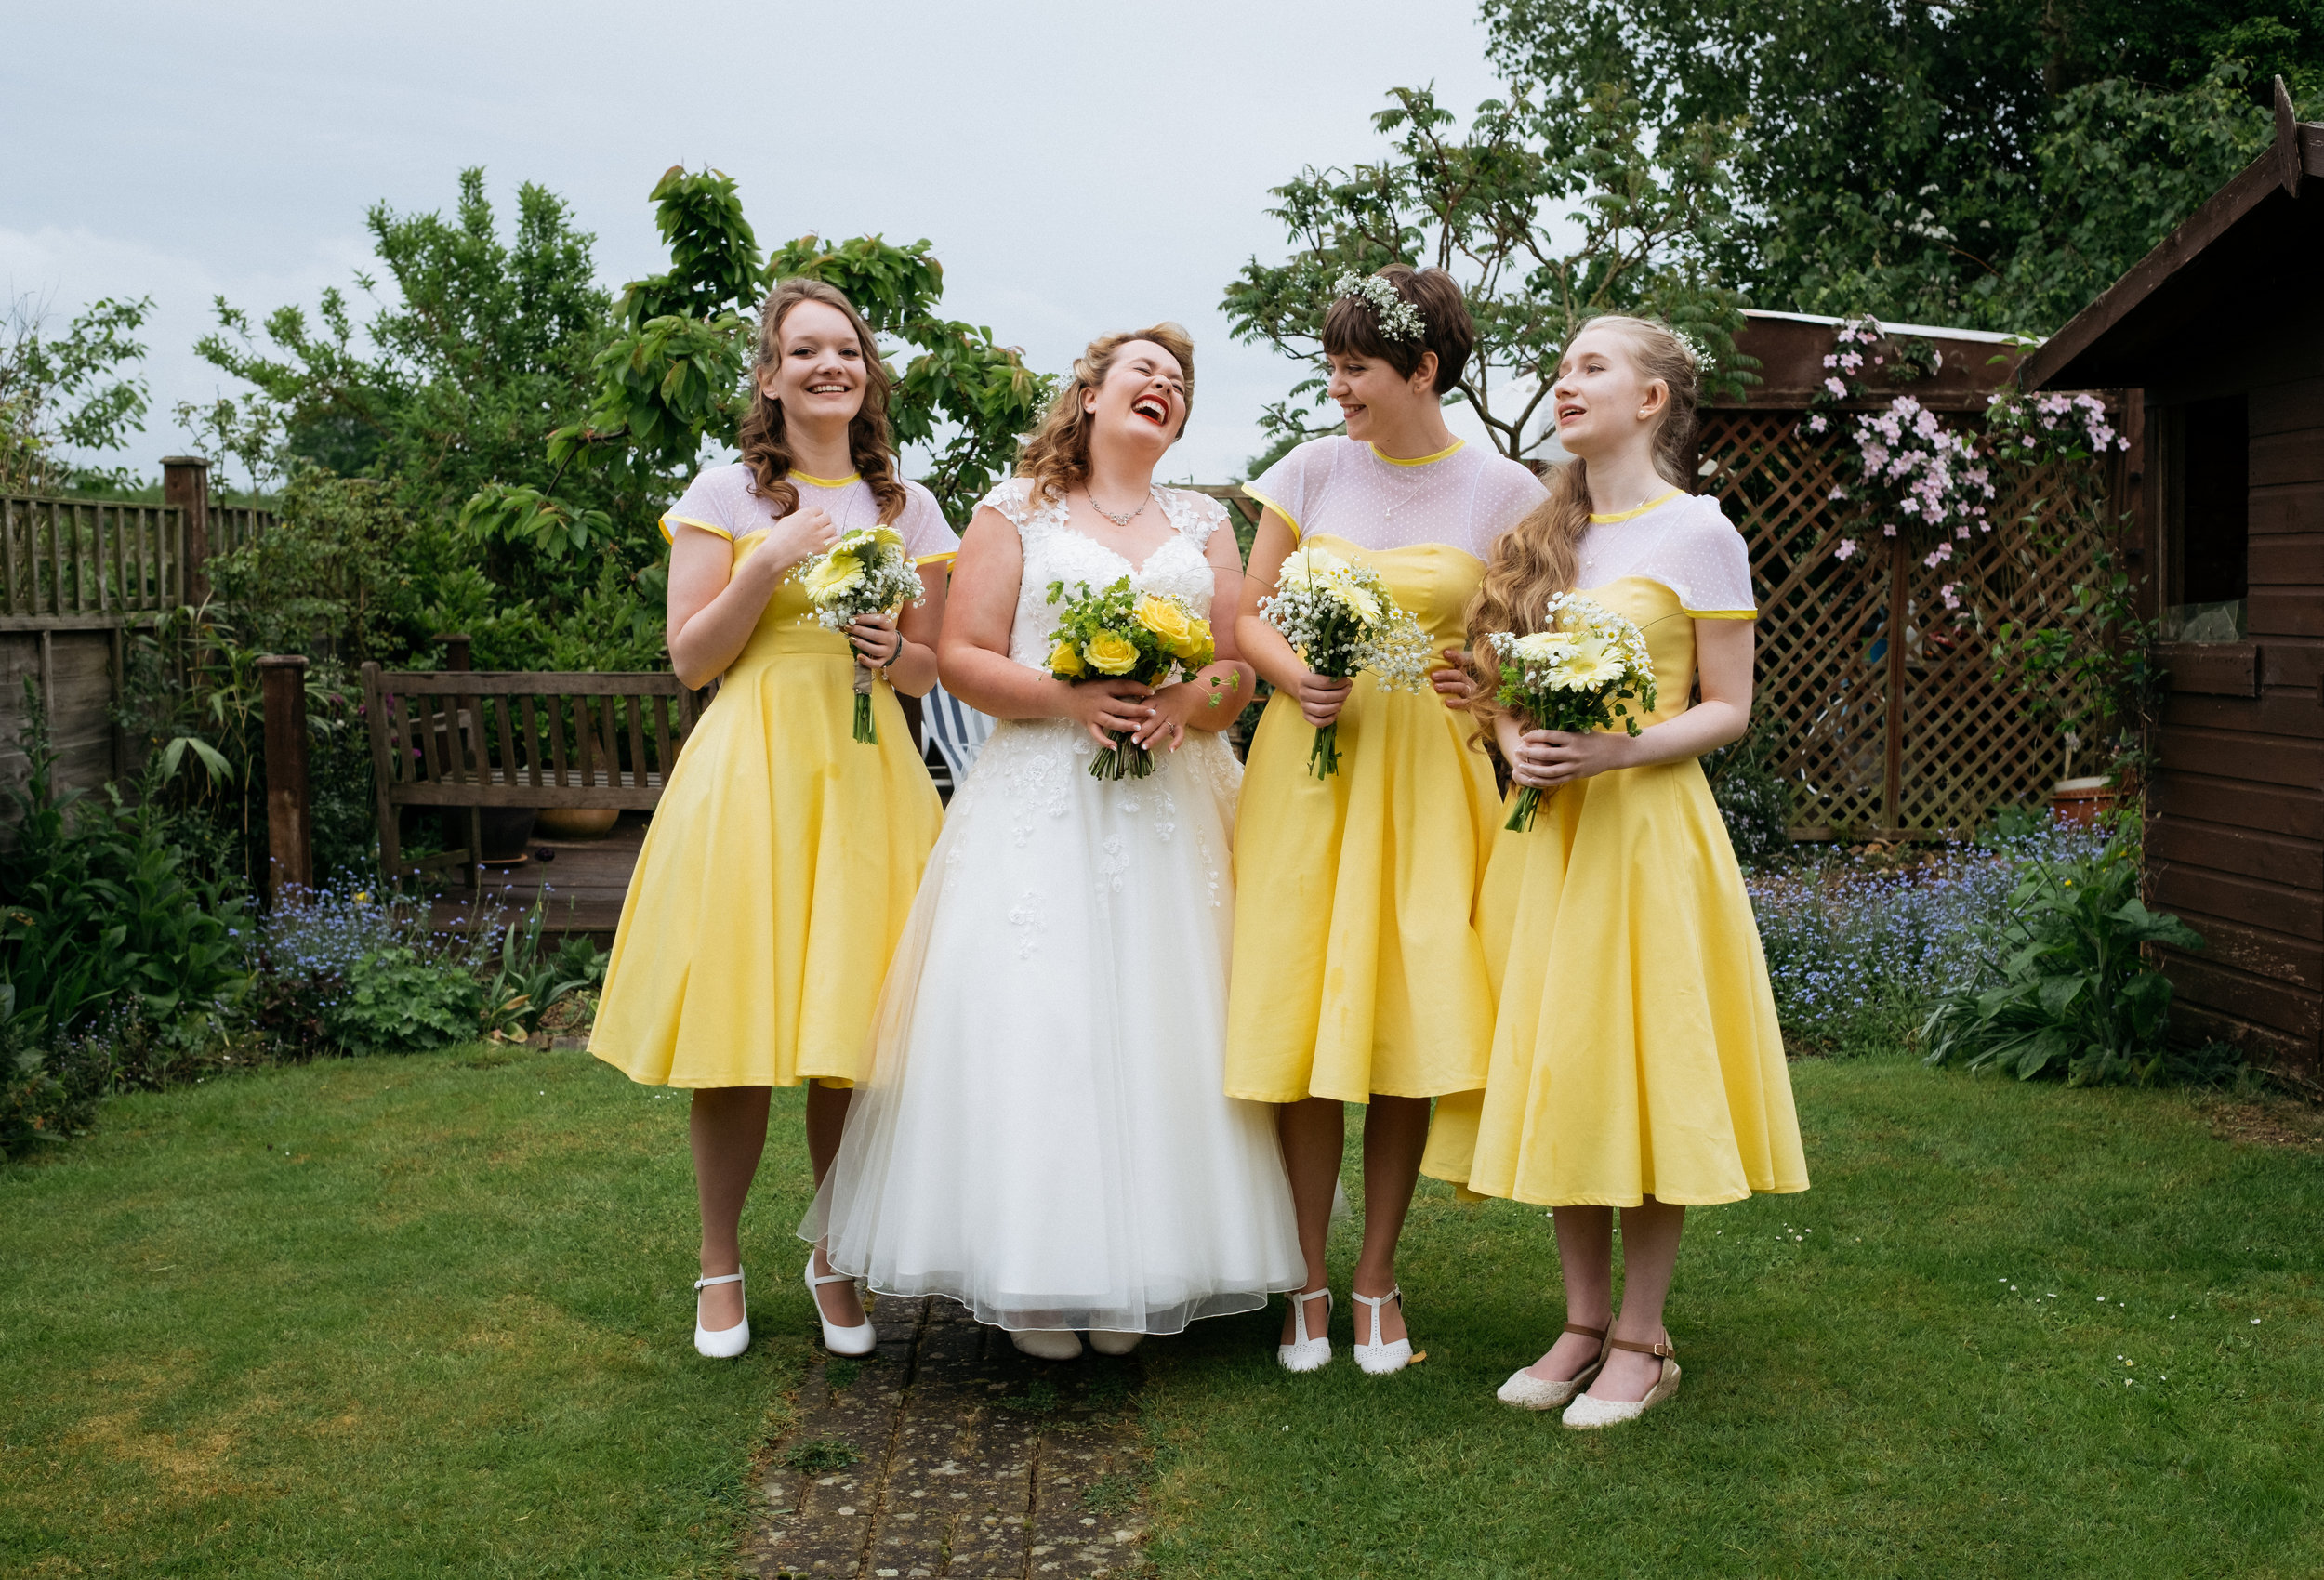 Bride and bridesmaids laughing in a back garden